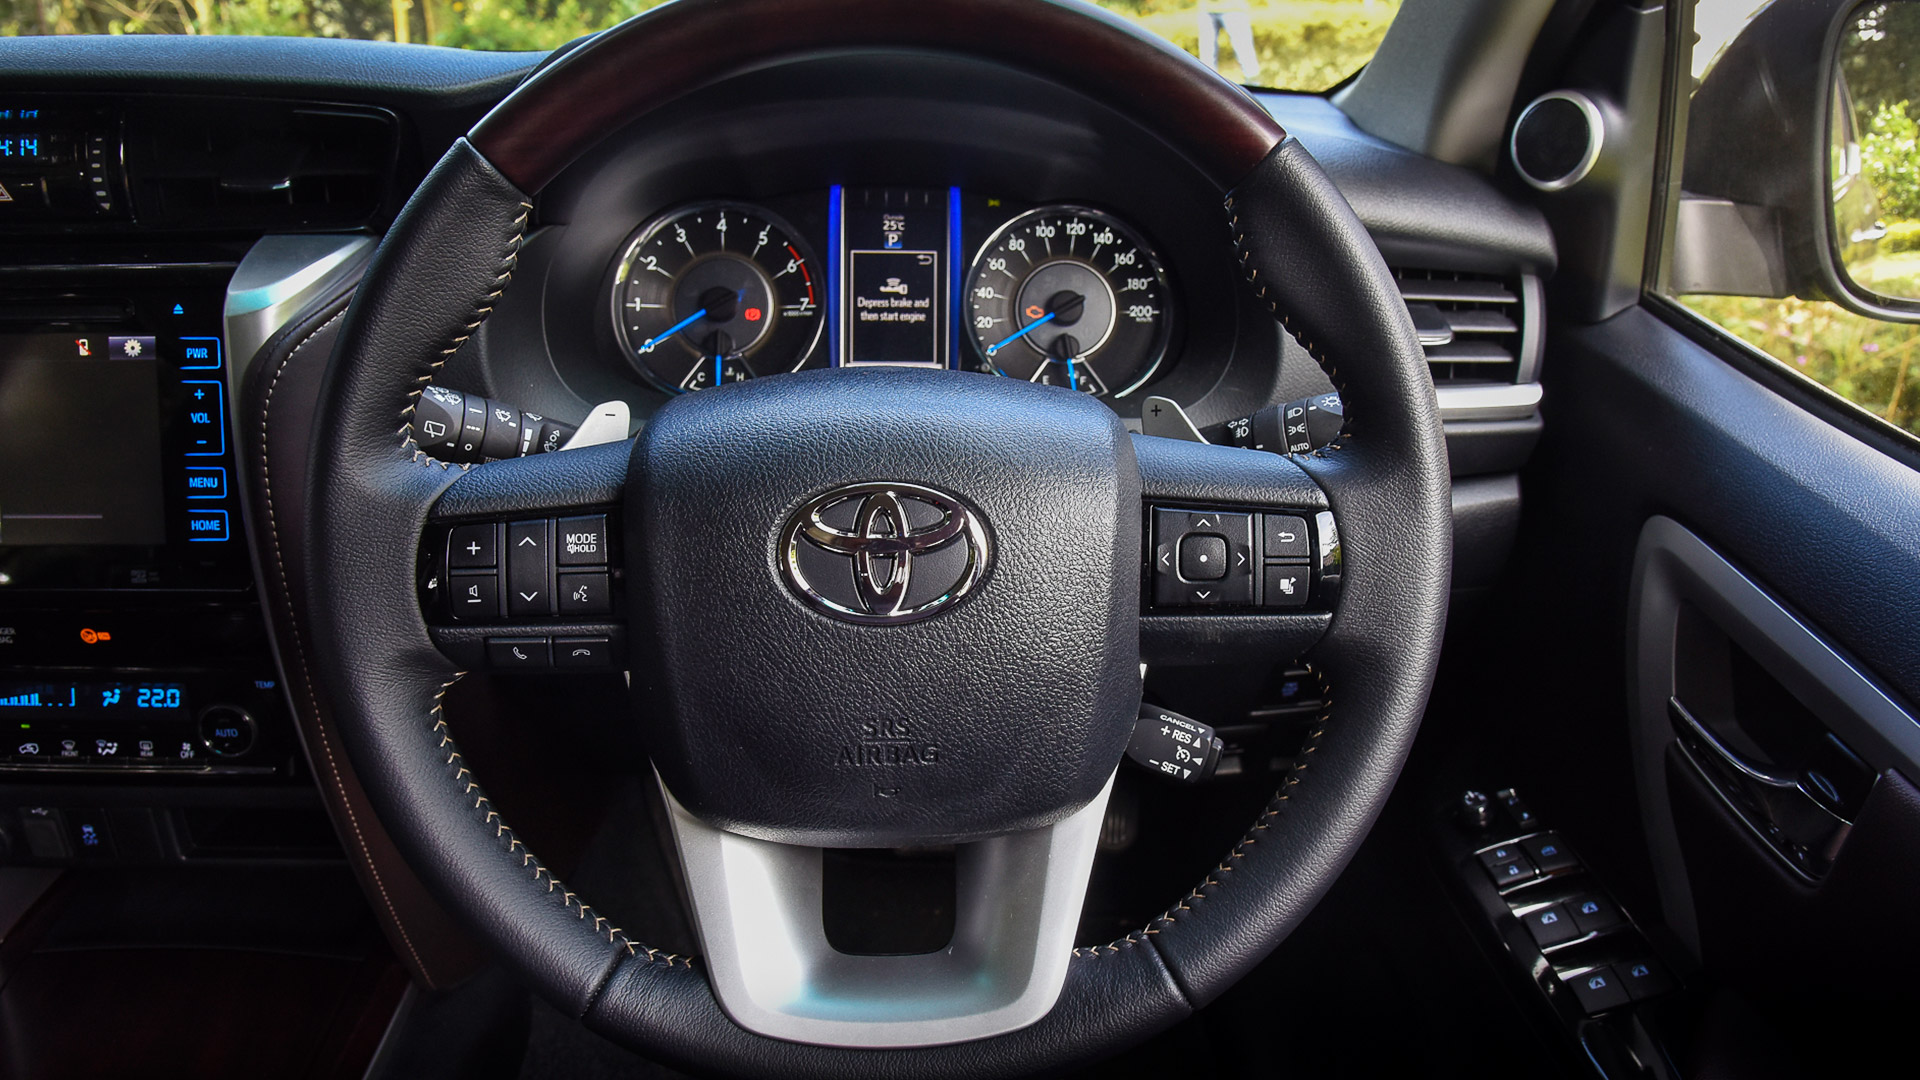 toyota fortuner 2016 - price  mileage  reviews  specification  gallery